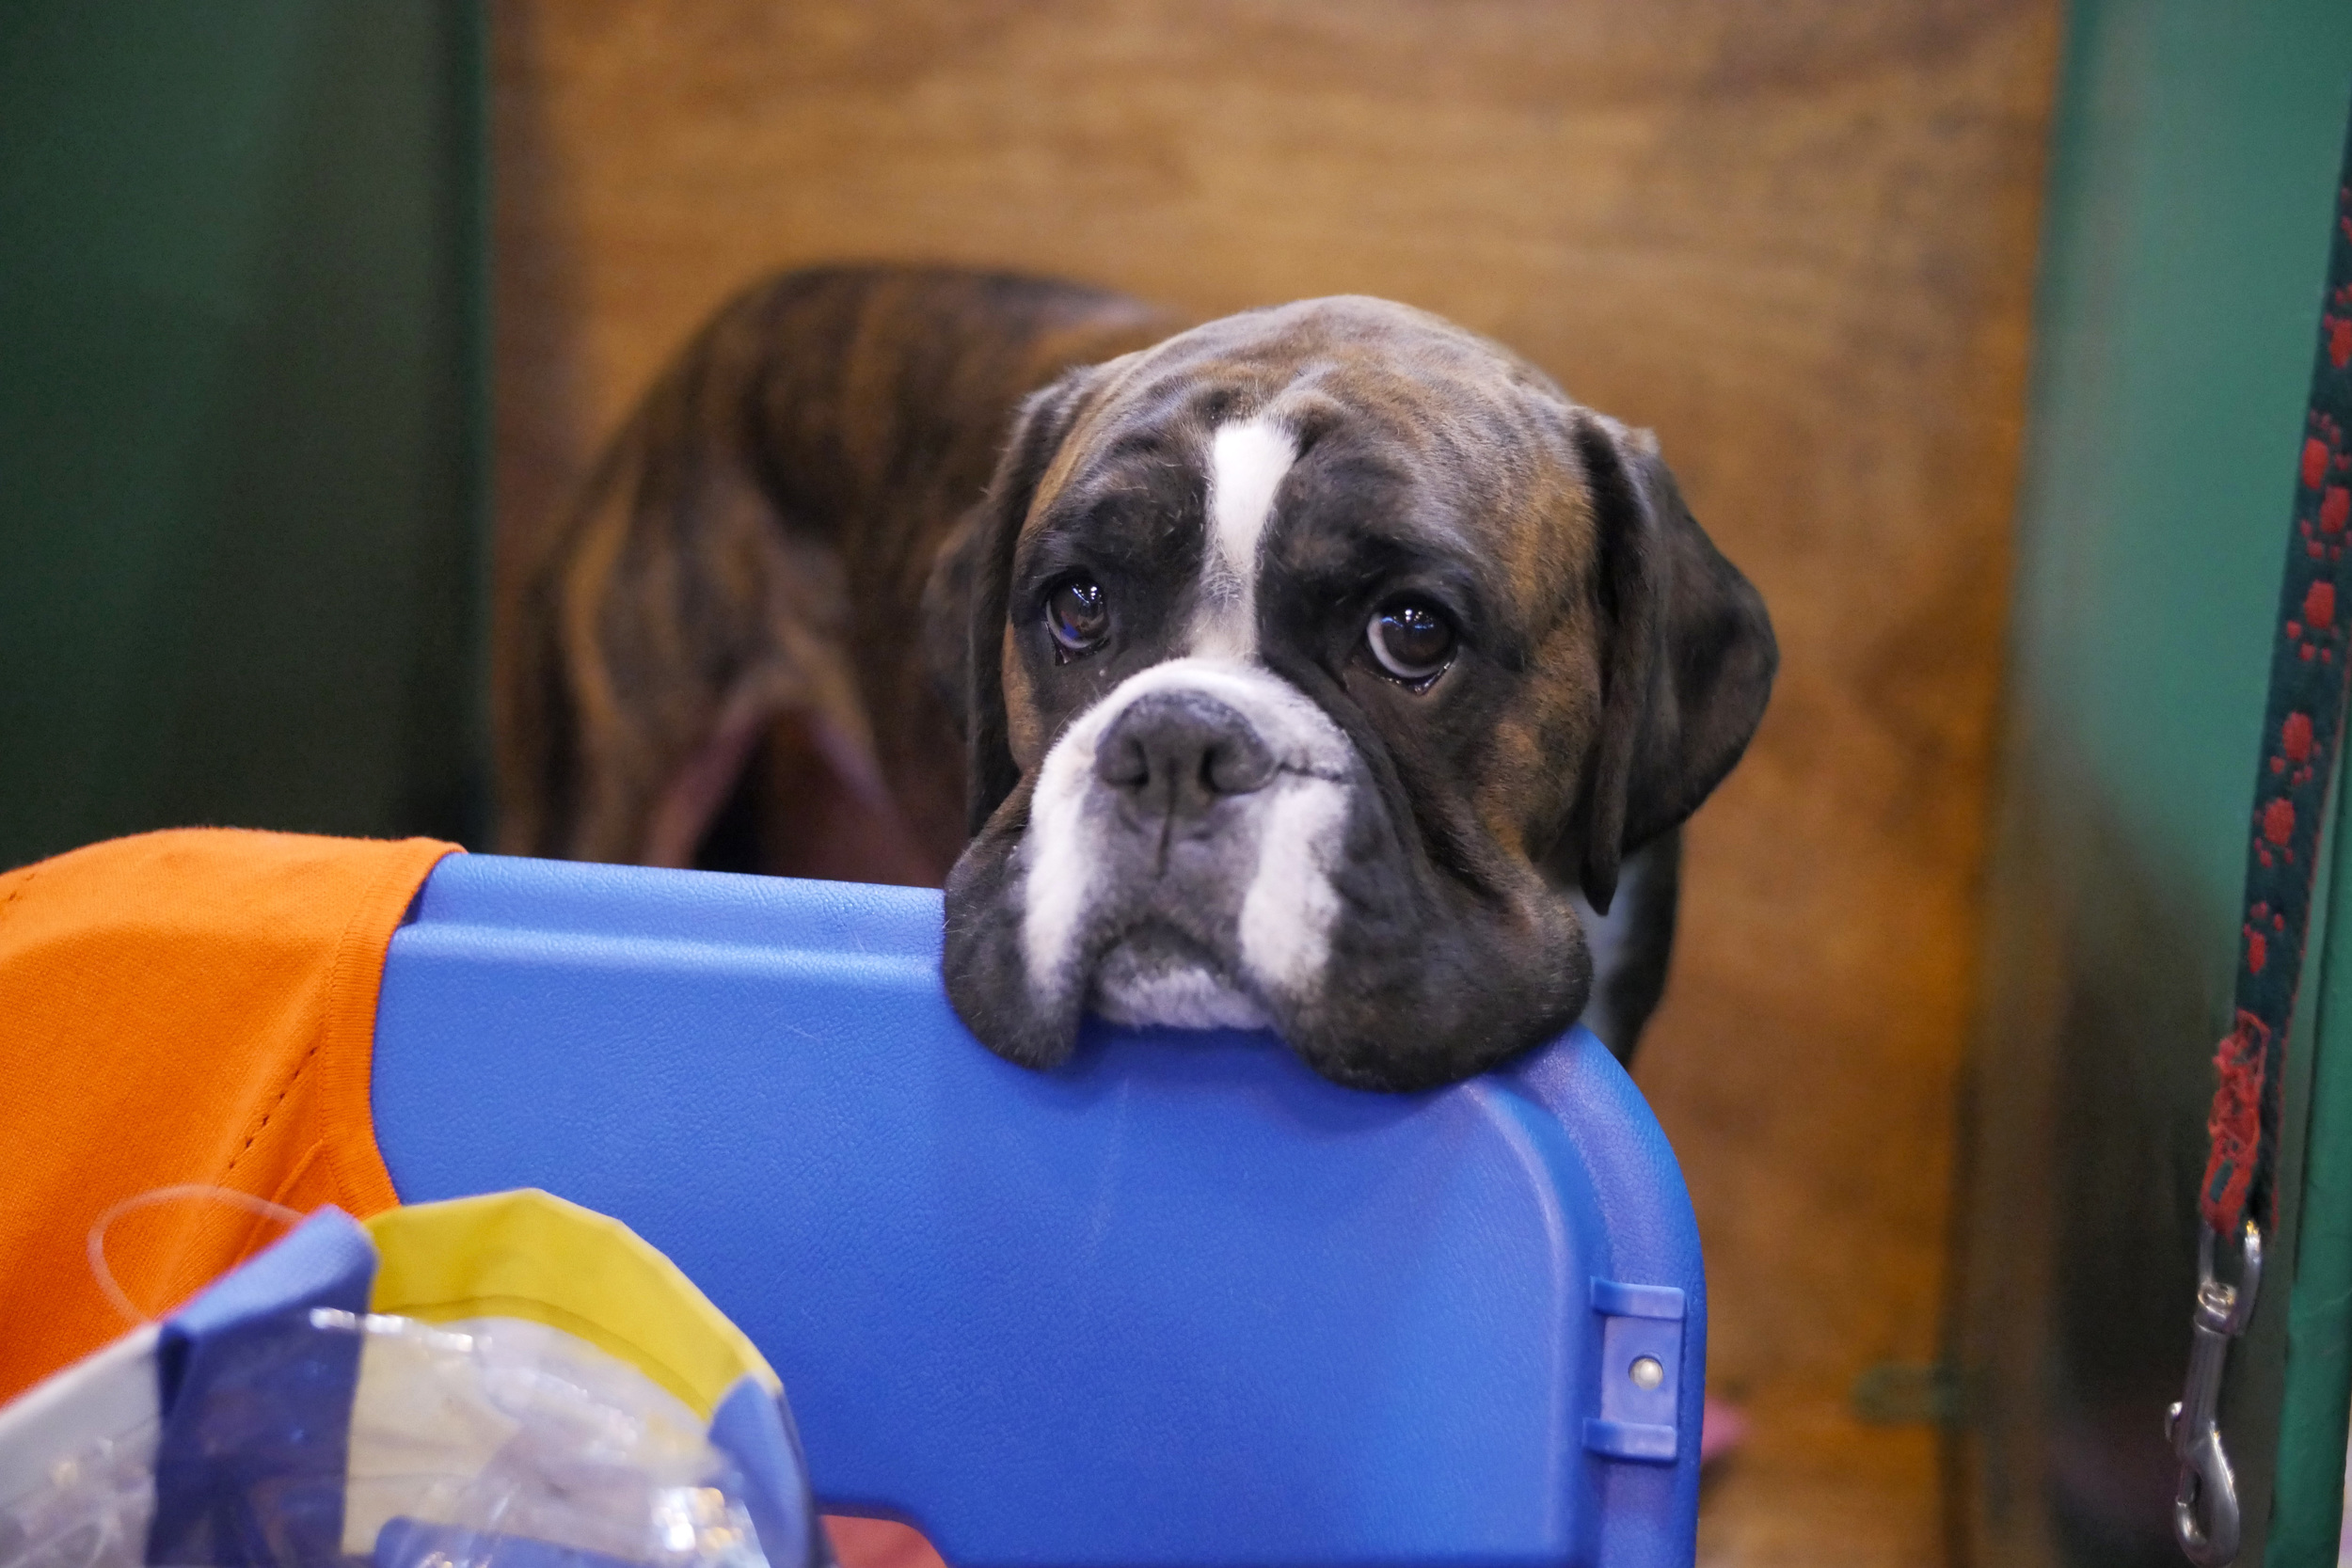 Looks like it's time to go home for this unbearably cute boxer. They have such a range of facial expressions!